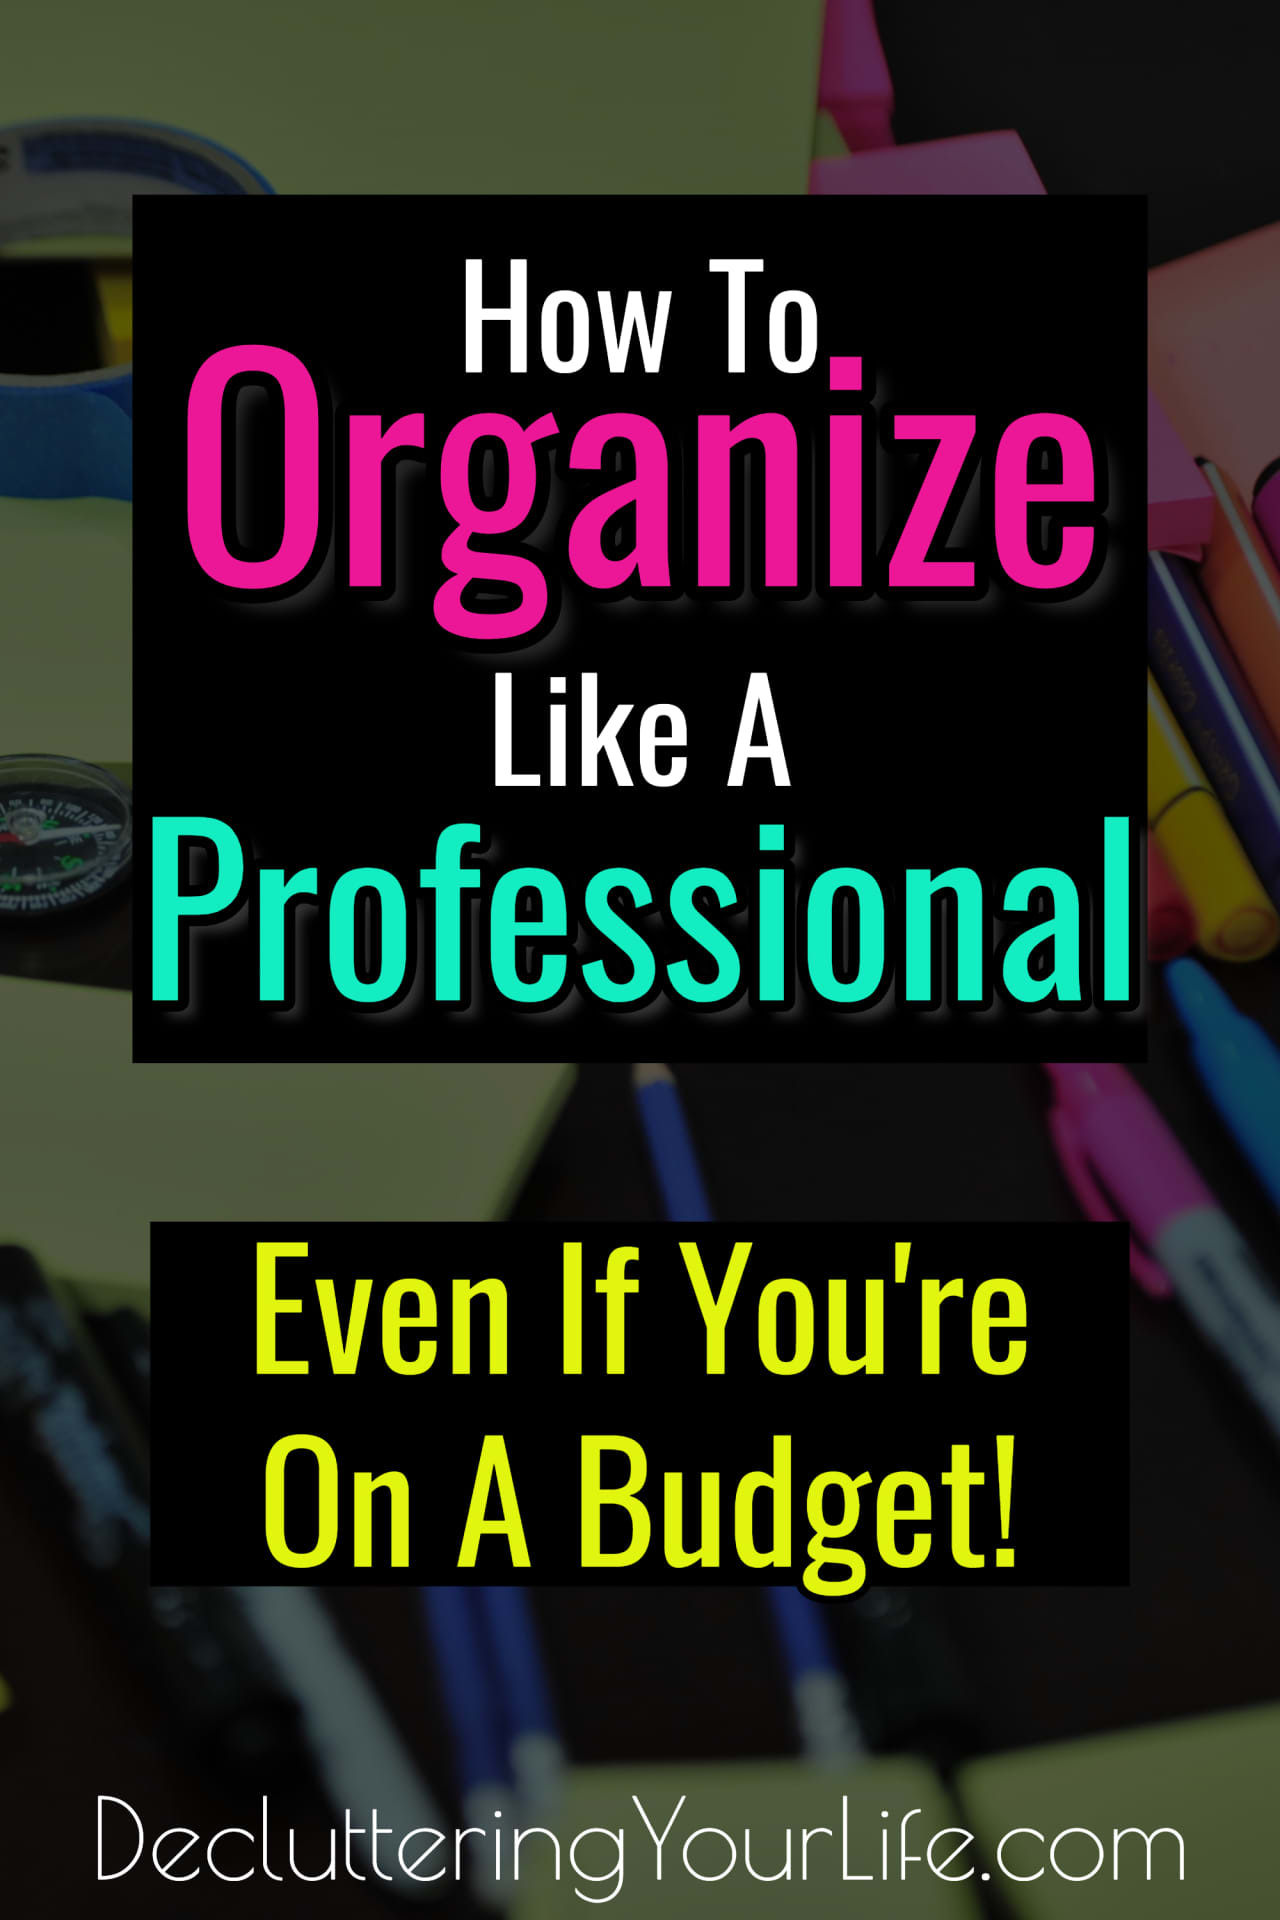 Organize Like a Pro! How To Get Organized Like a Professional Organizer - Even If You're On a Budget!  Cheap and easy DIY organization ideas for the home.  Let's declutter and organize the EASY way with these cheap organizing ideas like the Pros use!